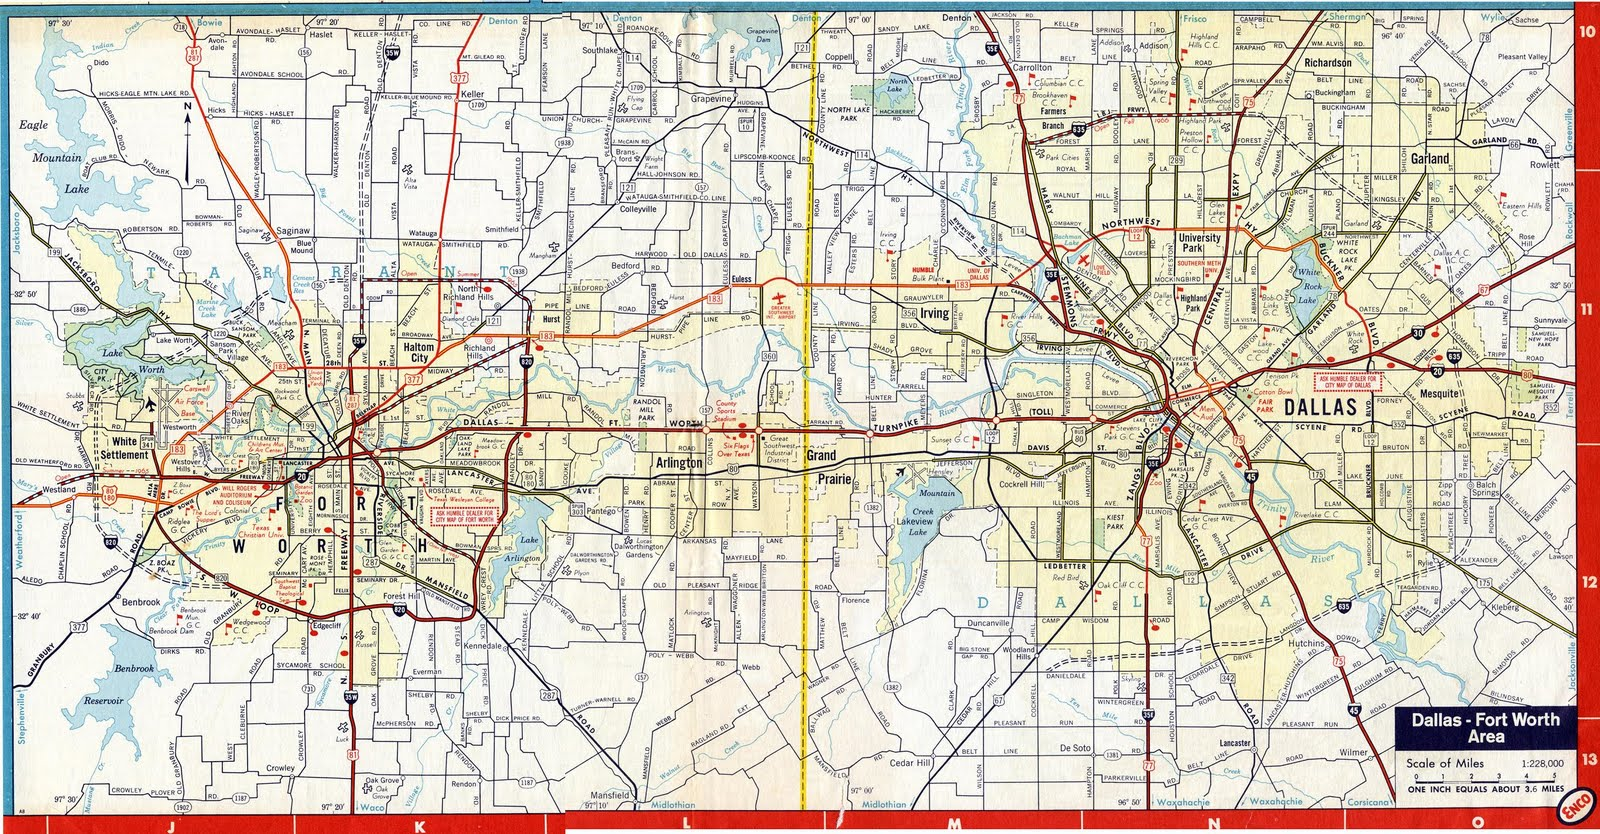 1965 enco dfw merged large resize=450 300